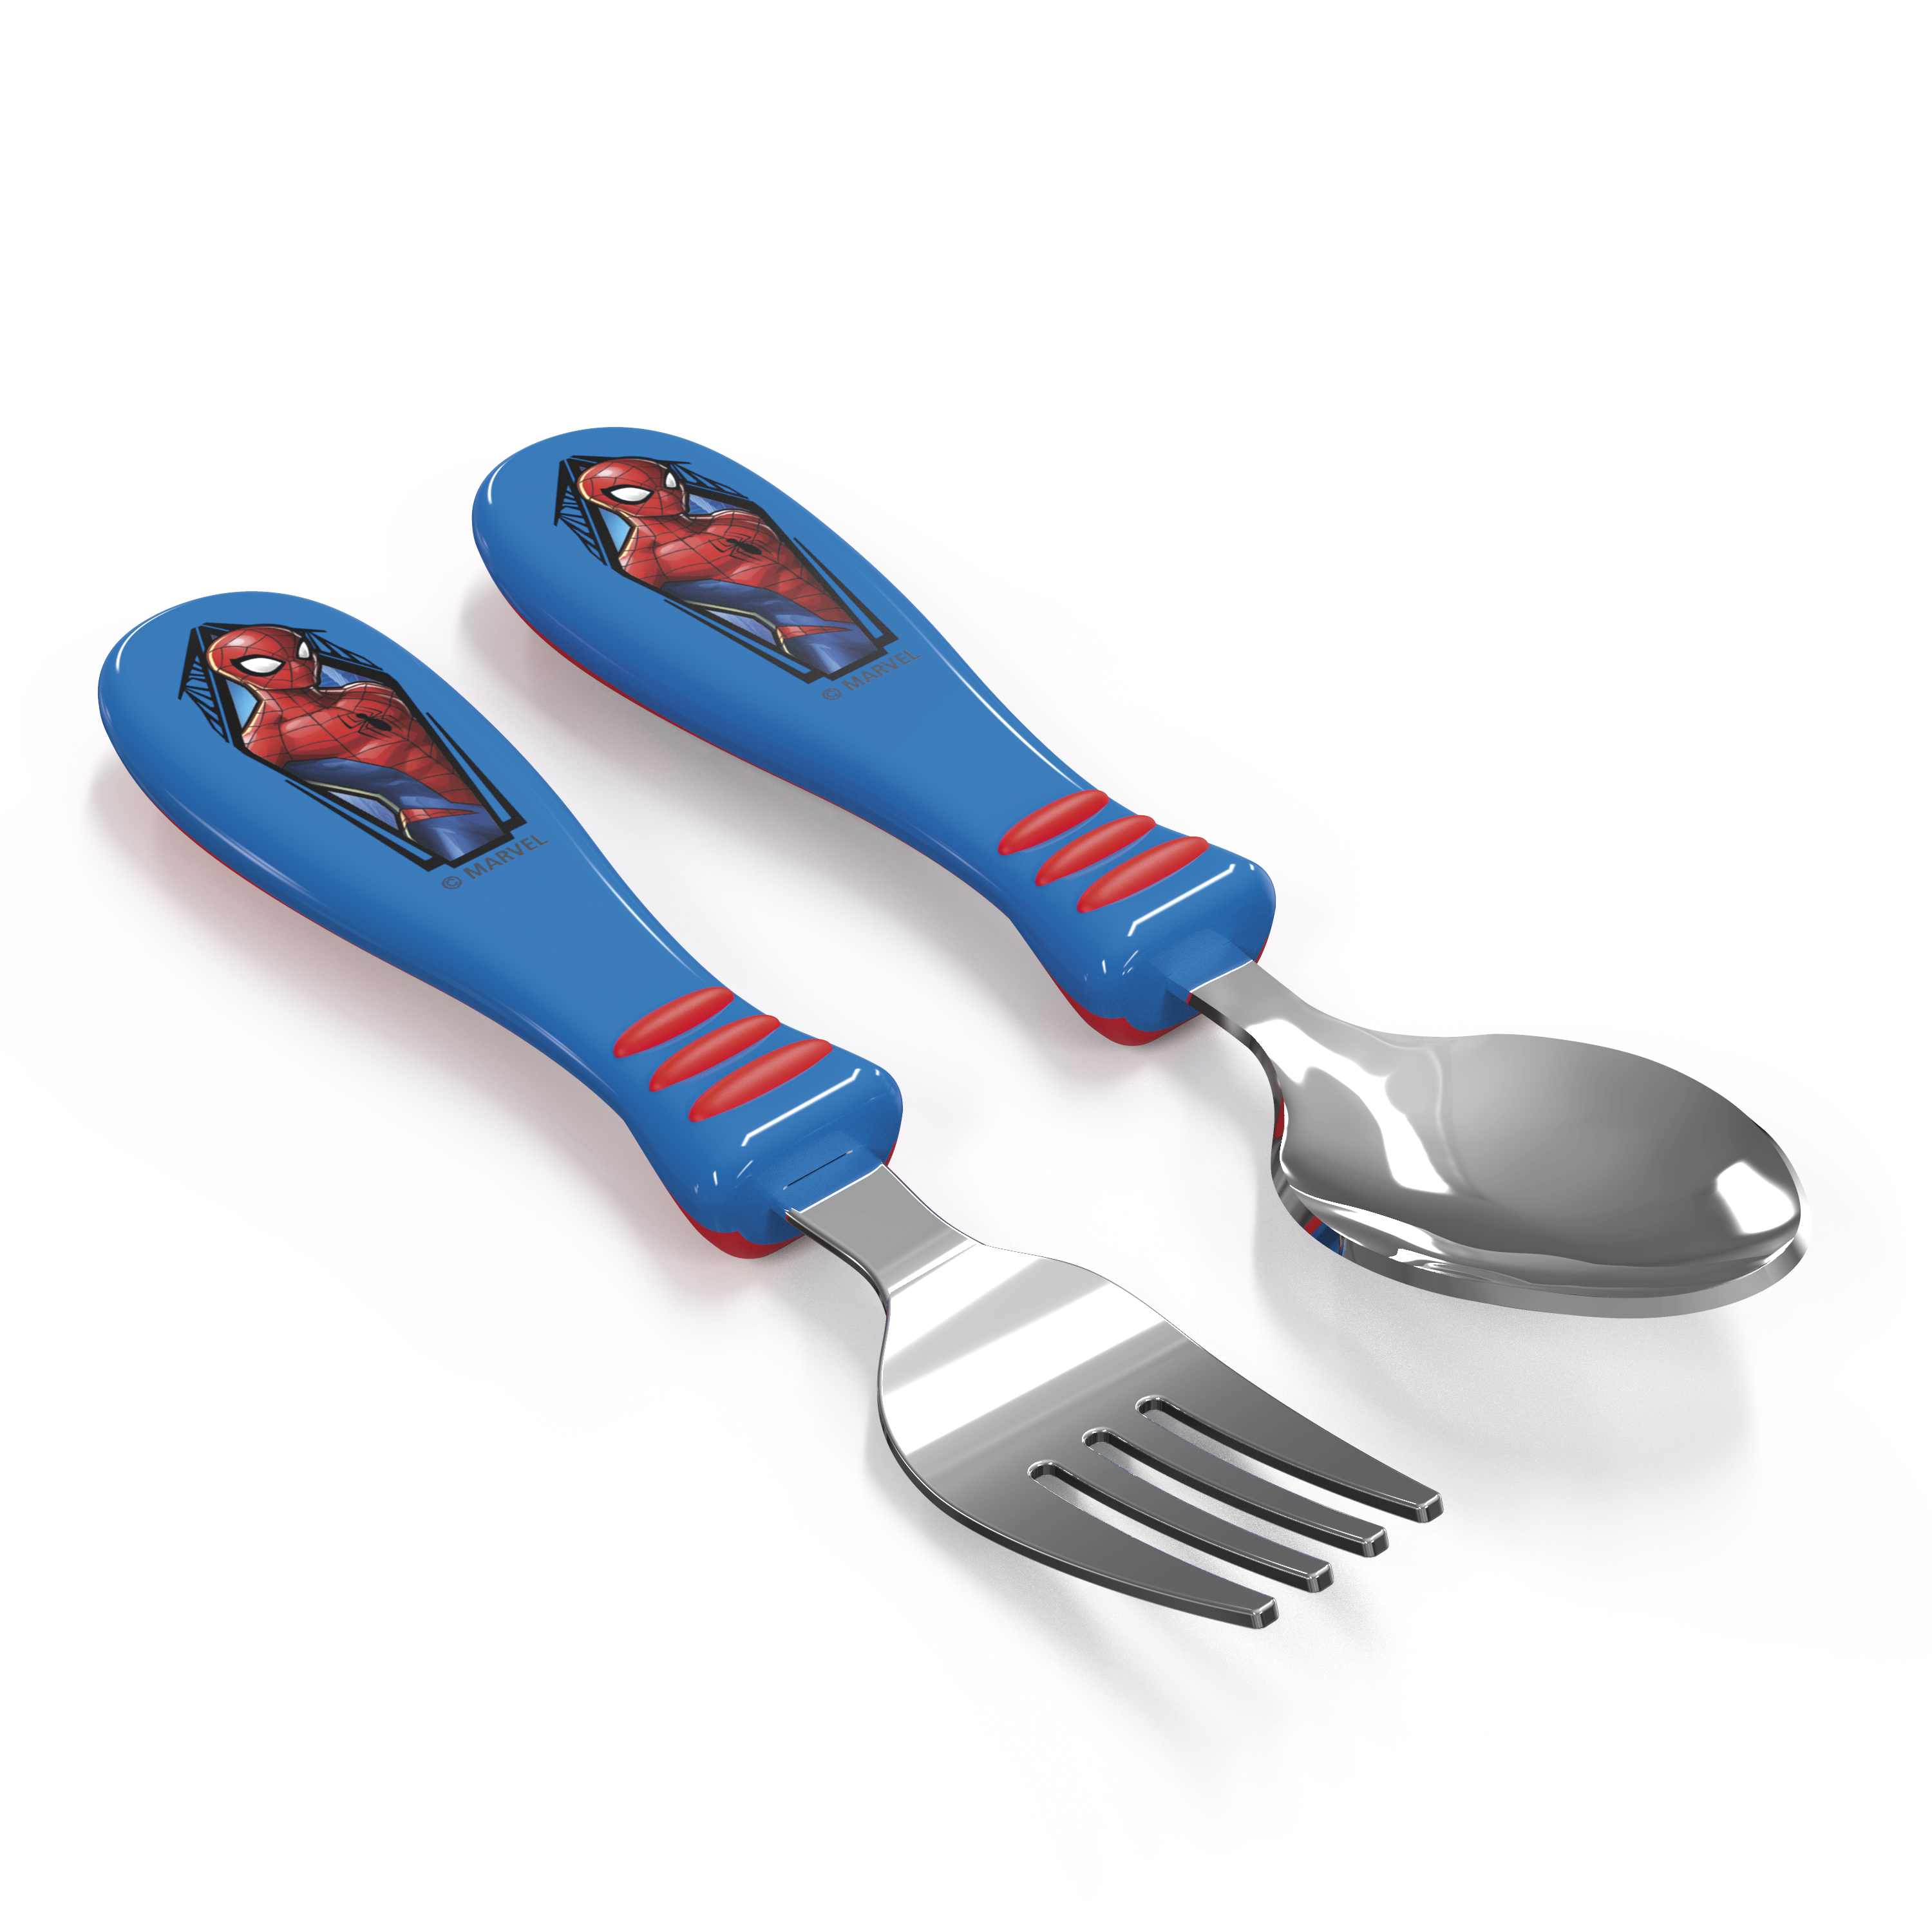 Marvel Comics Kid's Flatware, Spider-Man, 2-piece set slideshow image 3